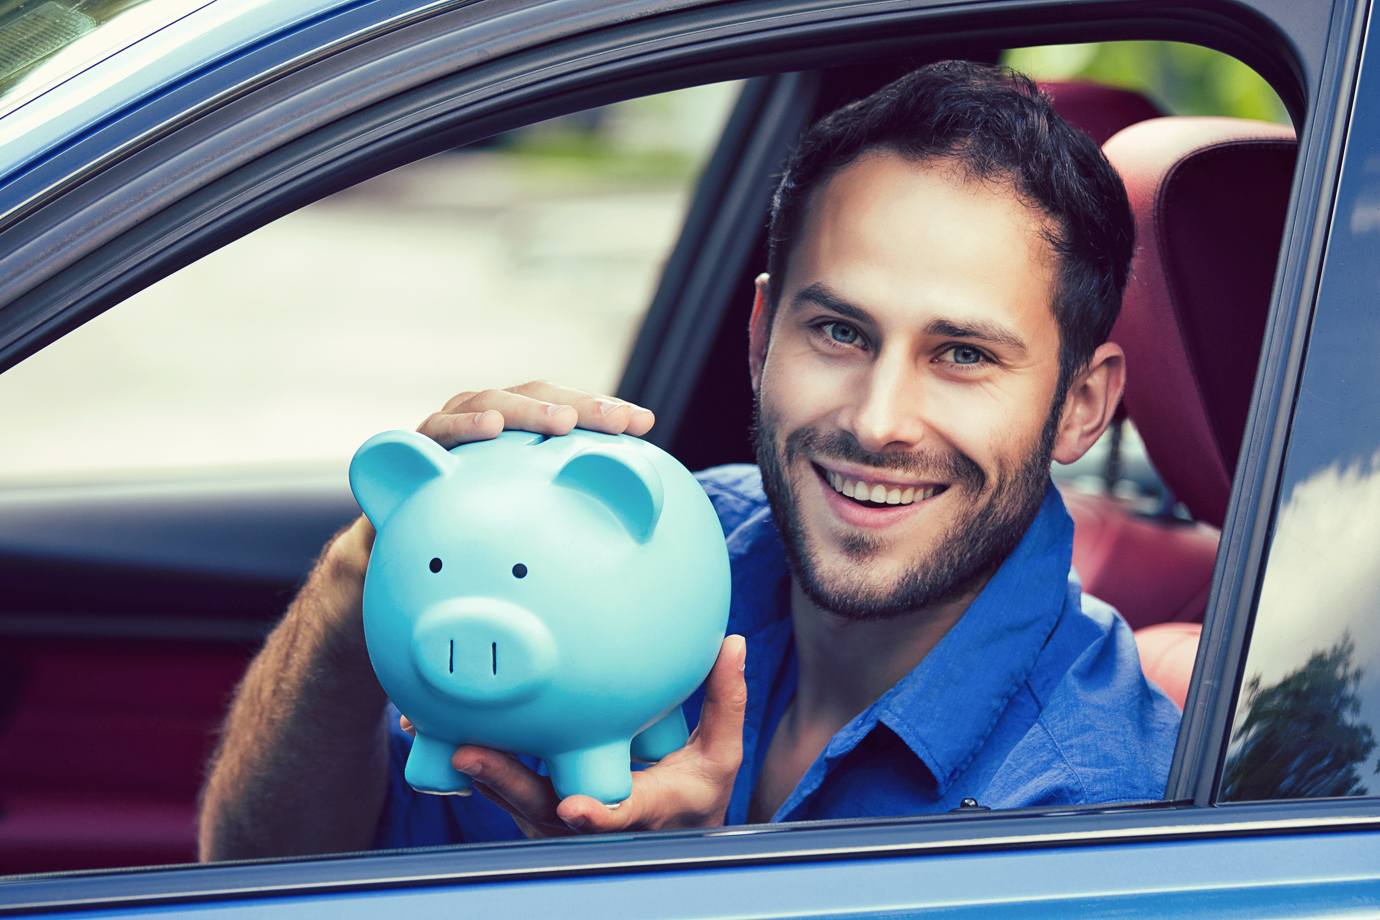 Be A Smart Auto Insurance Buyer by Asking the Right Questions | Go Auto Net